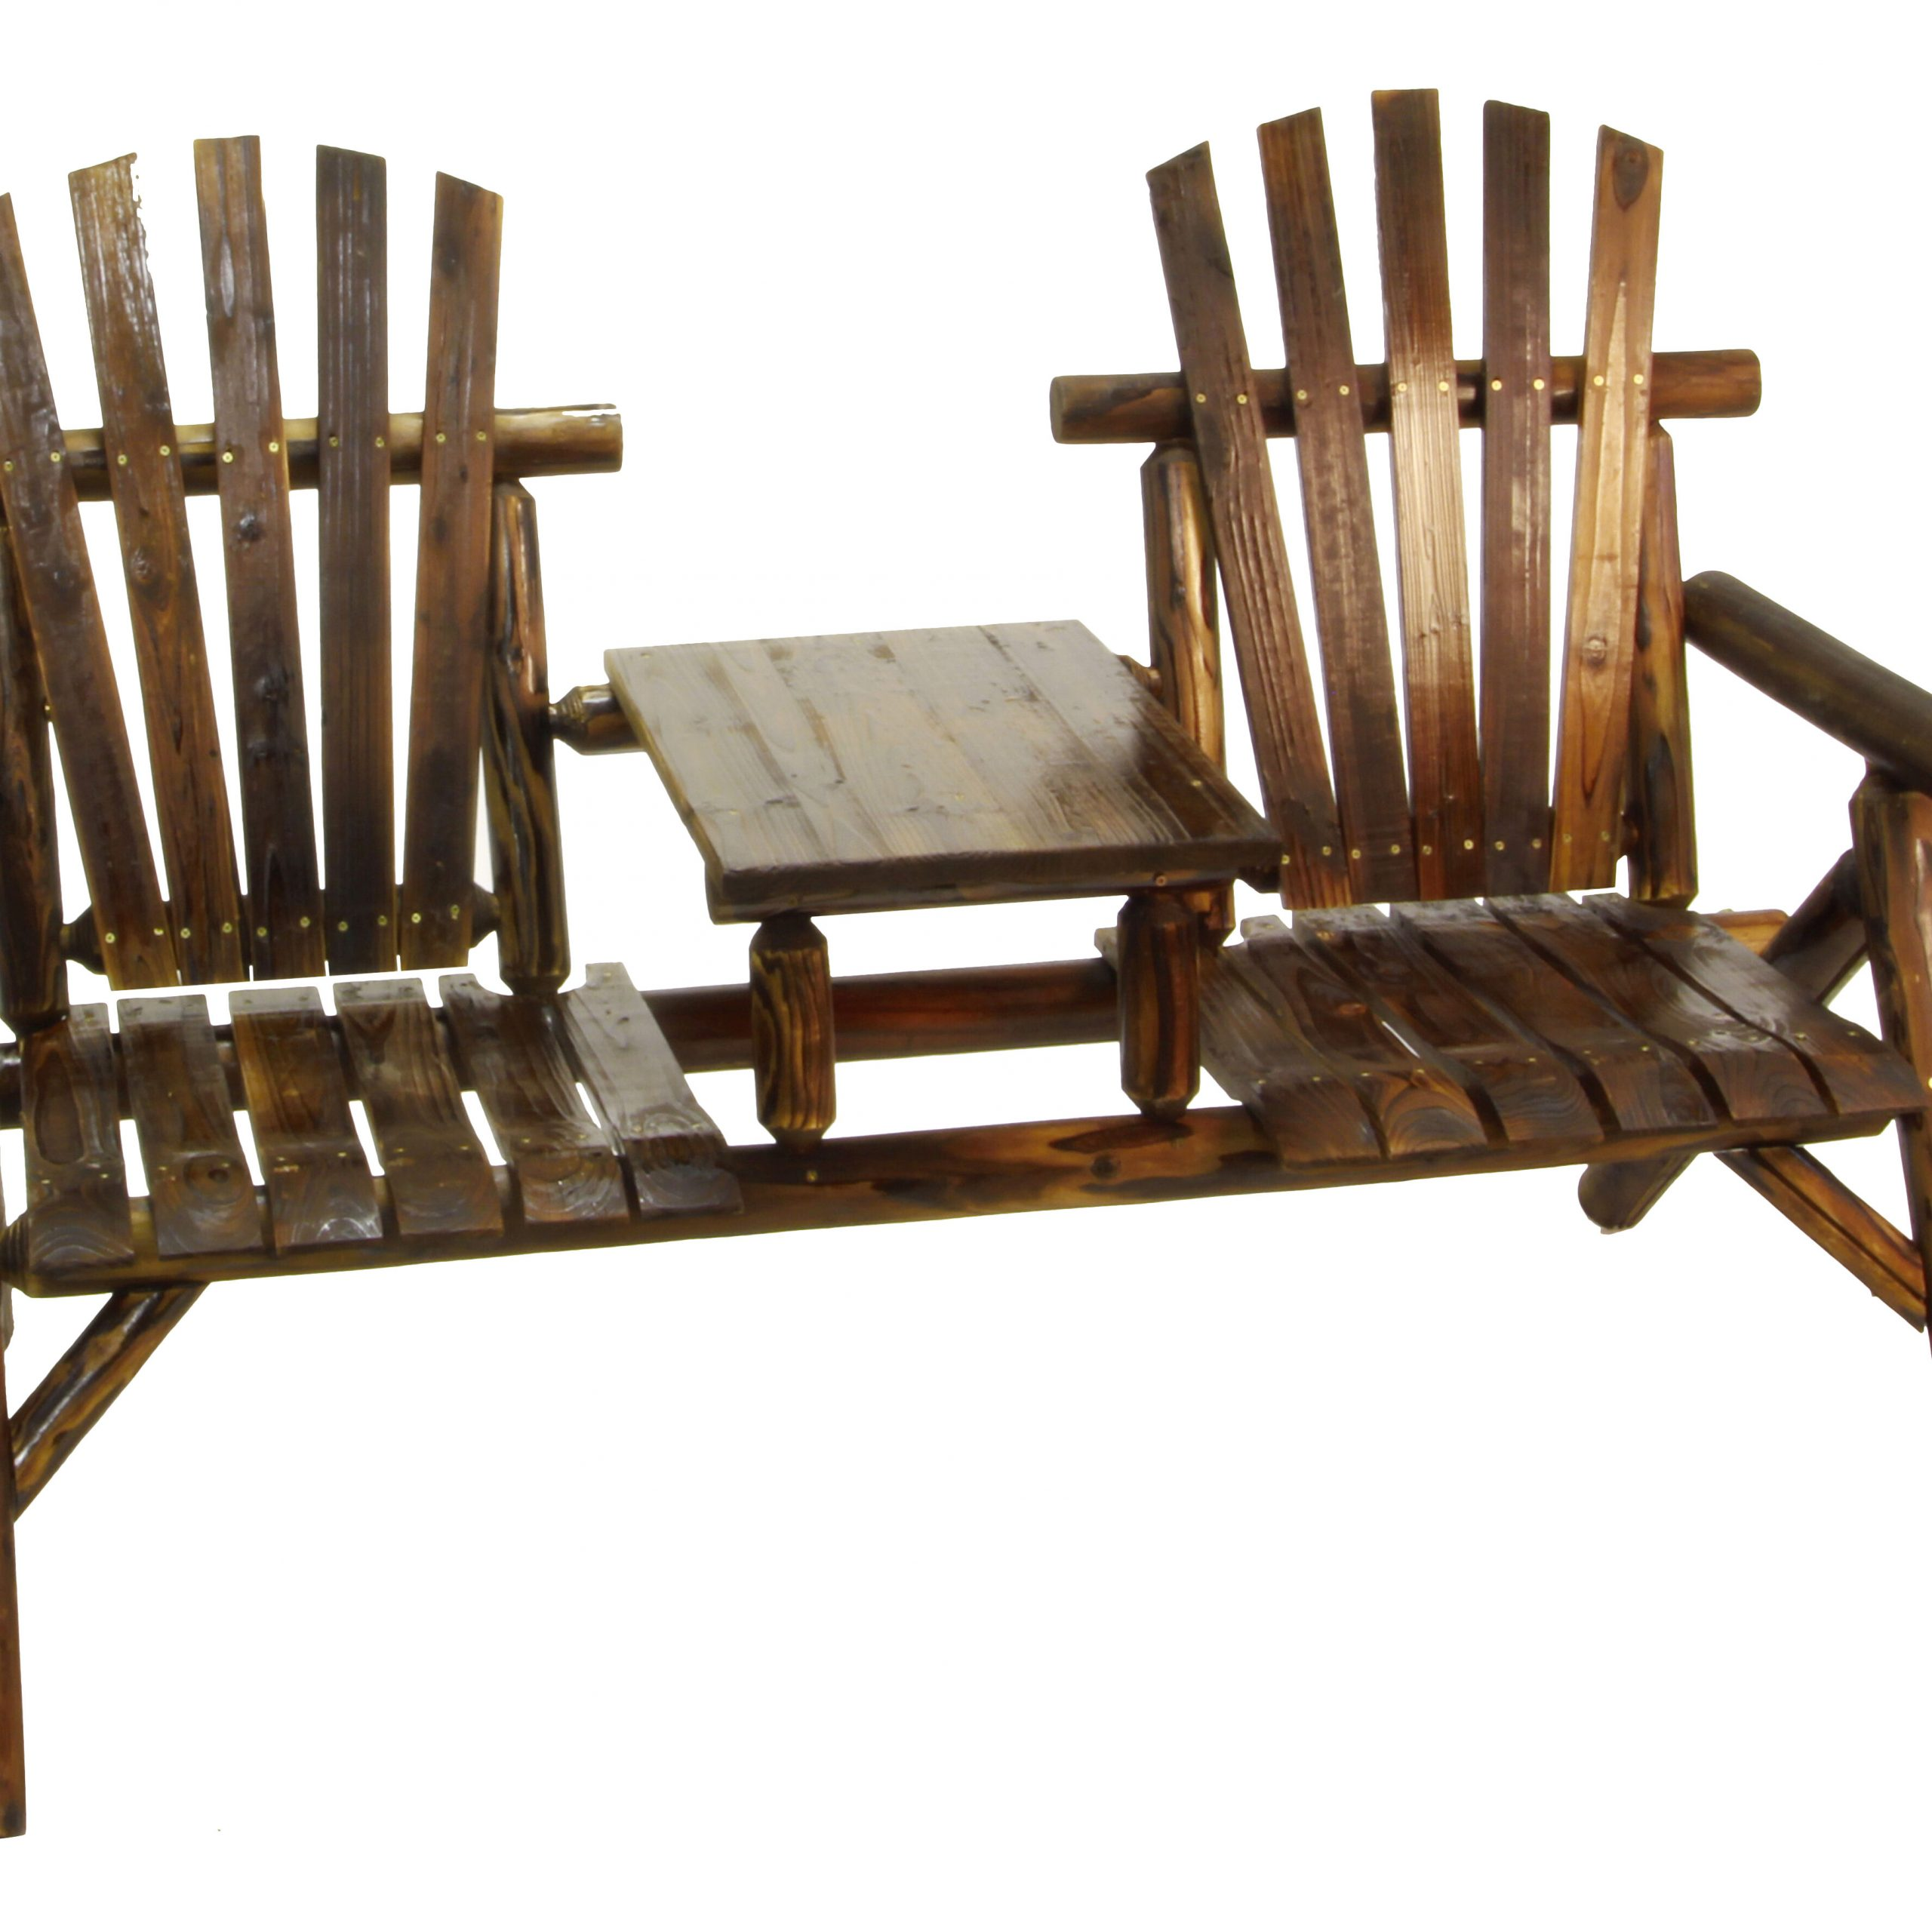 Argonne 2 Seat Fir Wood Tete A Tete Bench Intended For Lublin Wicker Tete A Tete Benches (View 8 of 25)